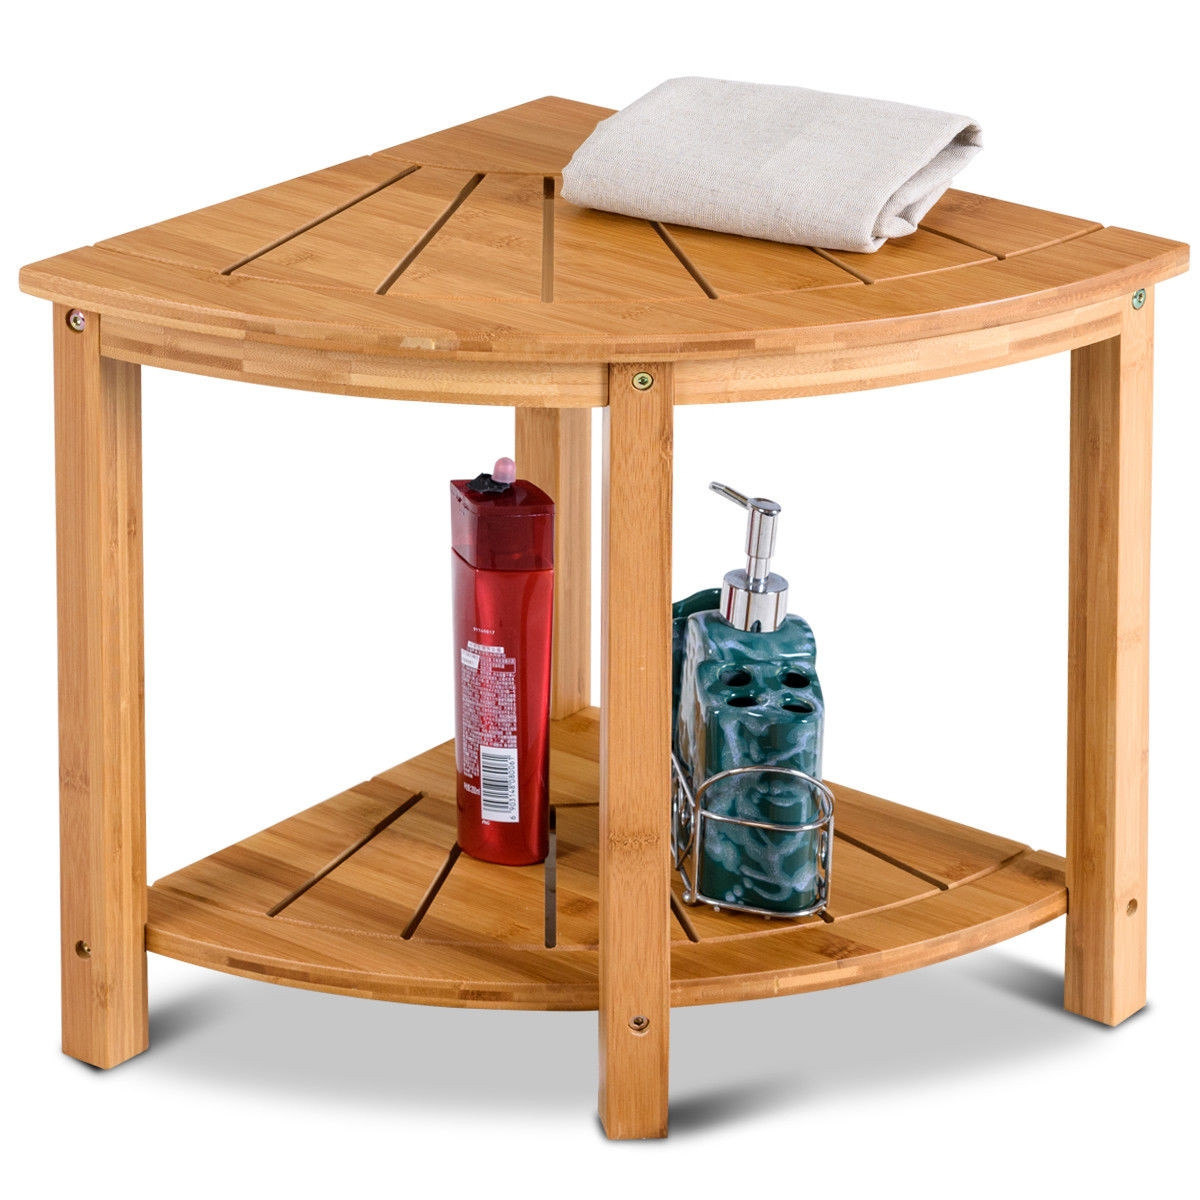 Small Corner Shower Bench Wood Spa Seat Storage Shelf Table Stand